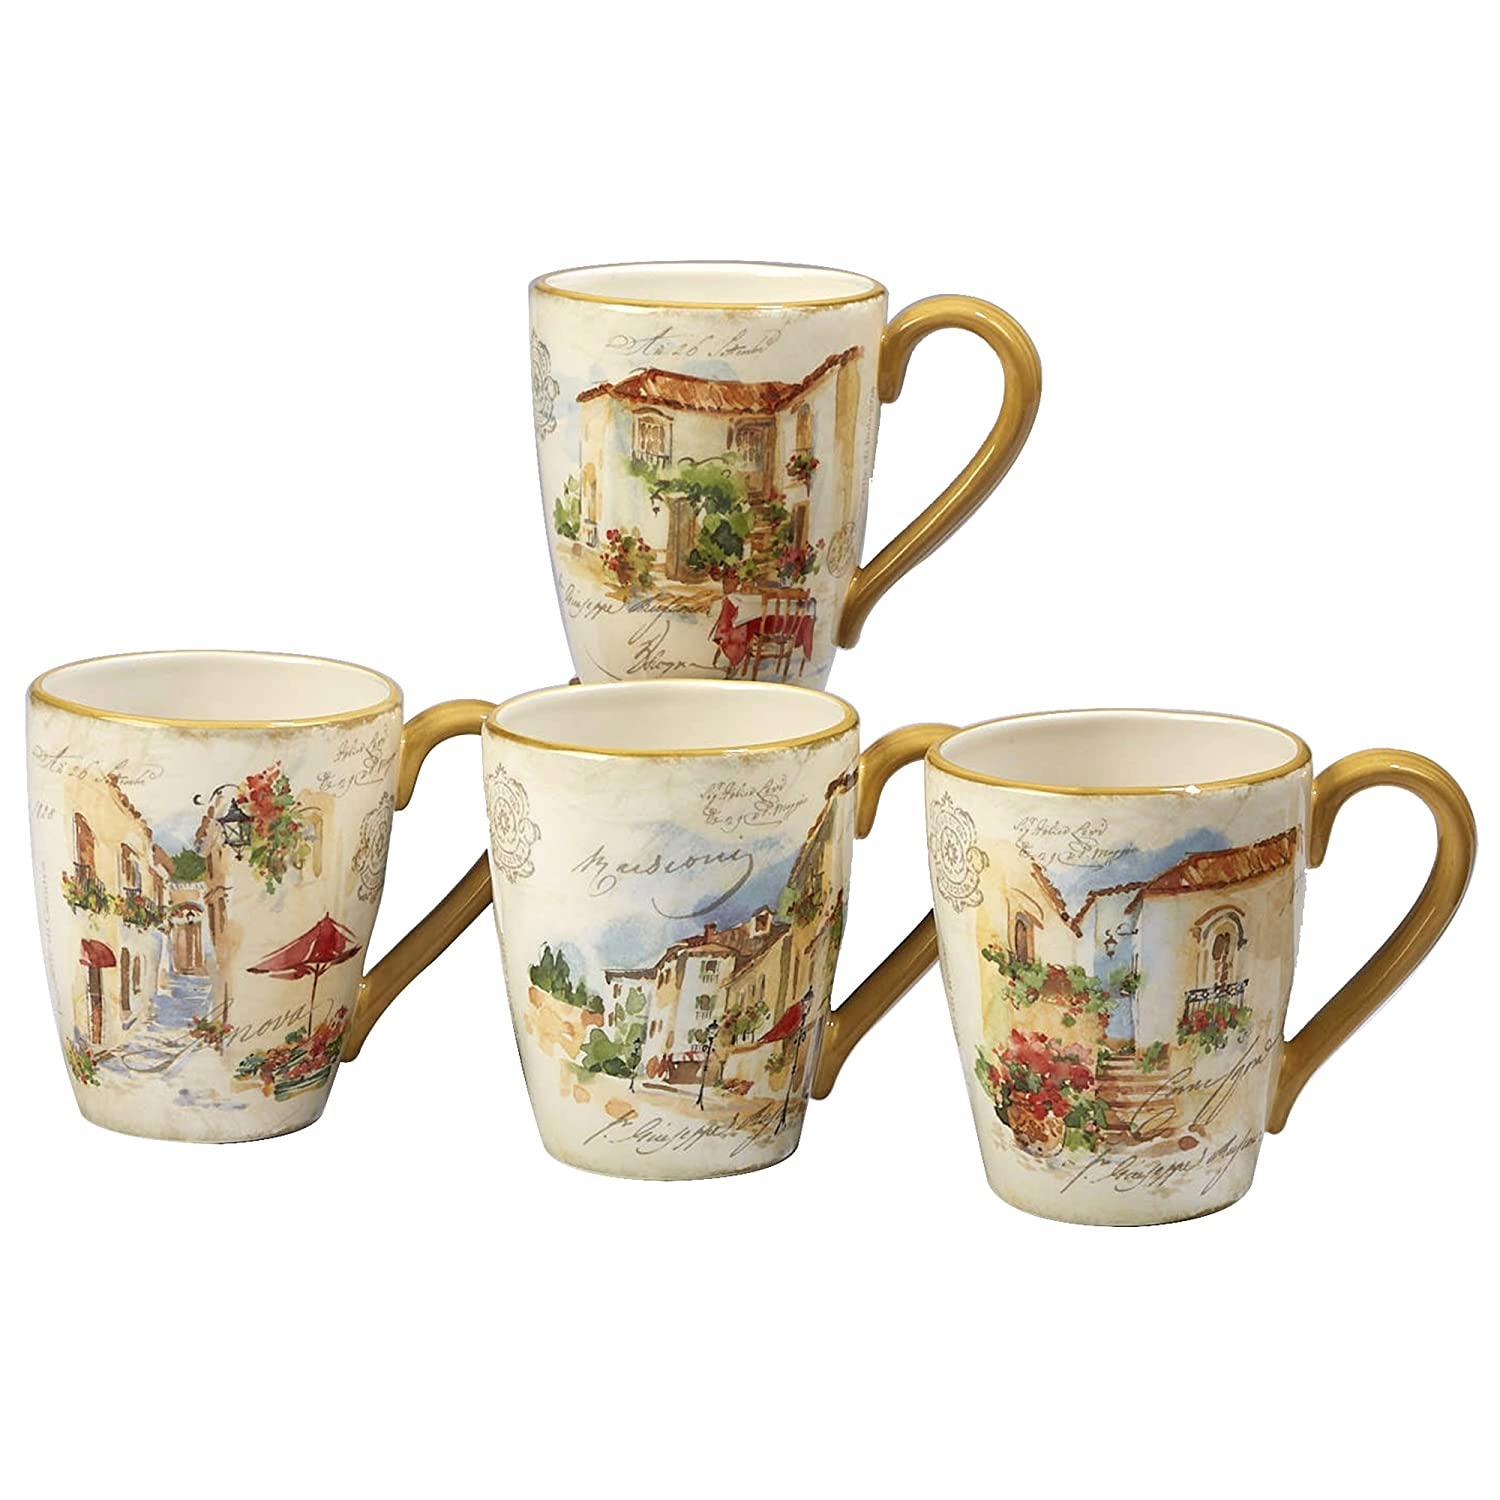 Certified International Corp 23672SET4 Piazzette 22 oz. Mugs, Assorted Designs, Set of 4 Multicolor